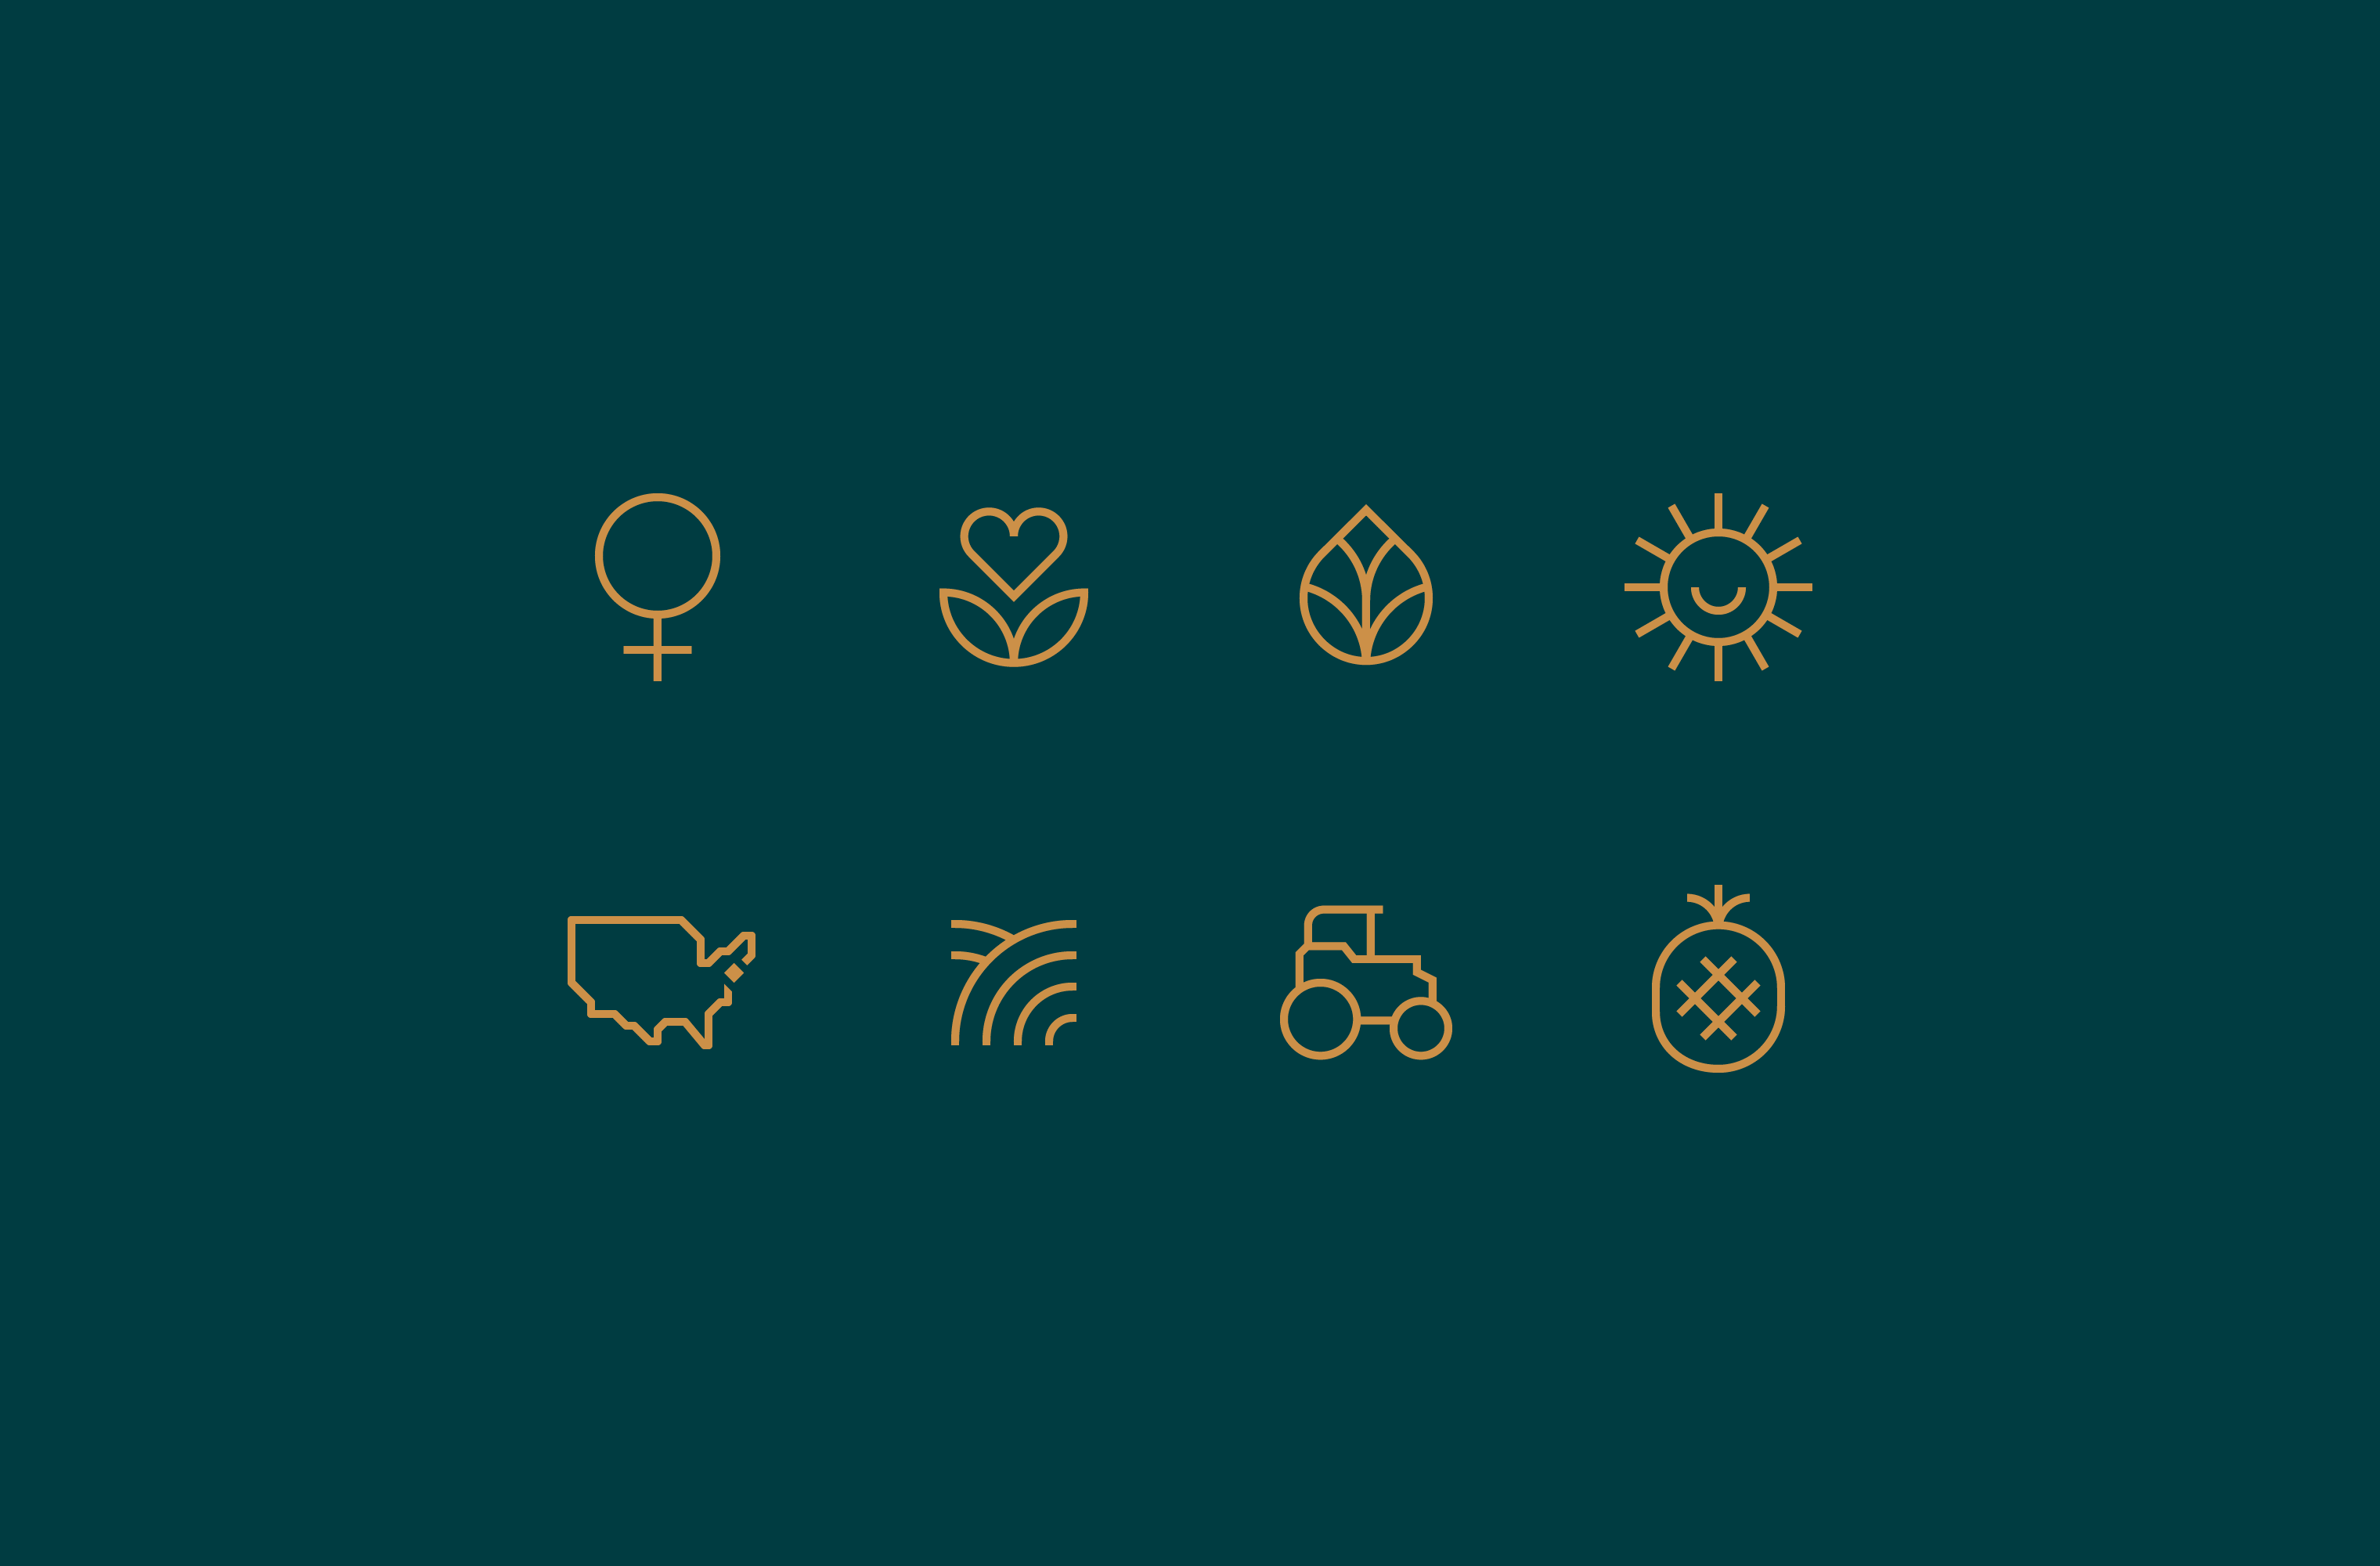 Yellow Grazy icon set on a teal background